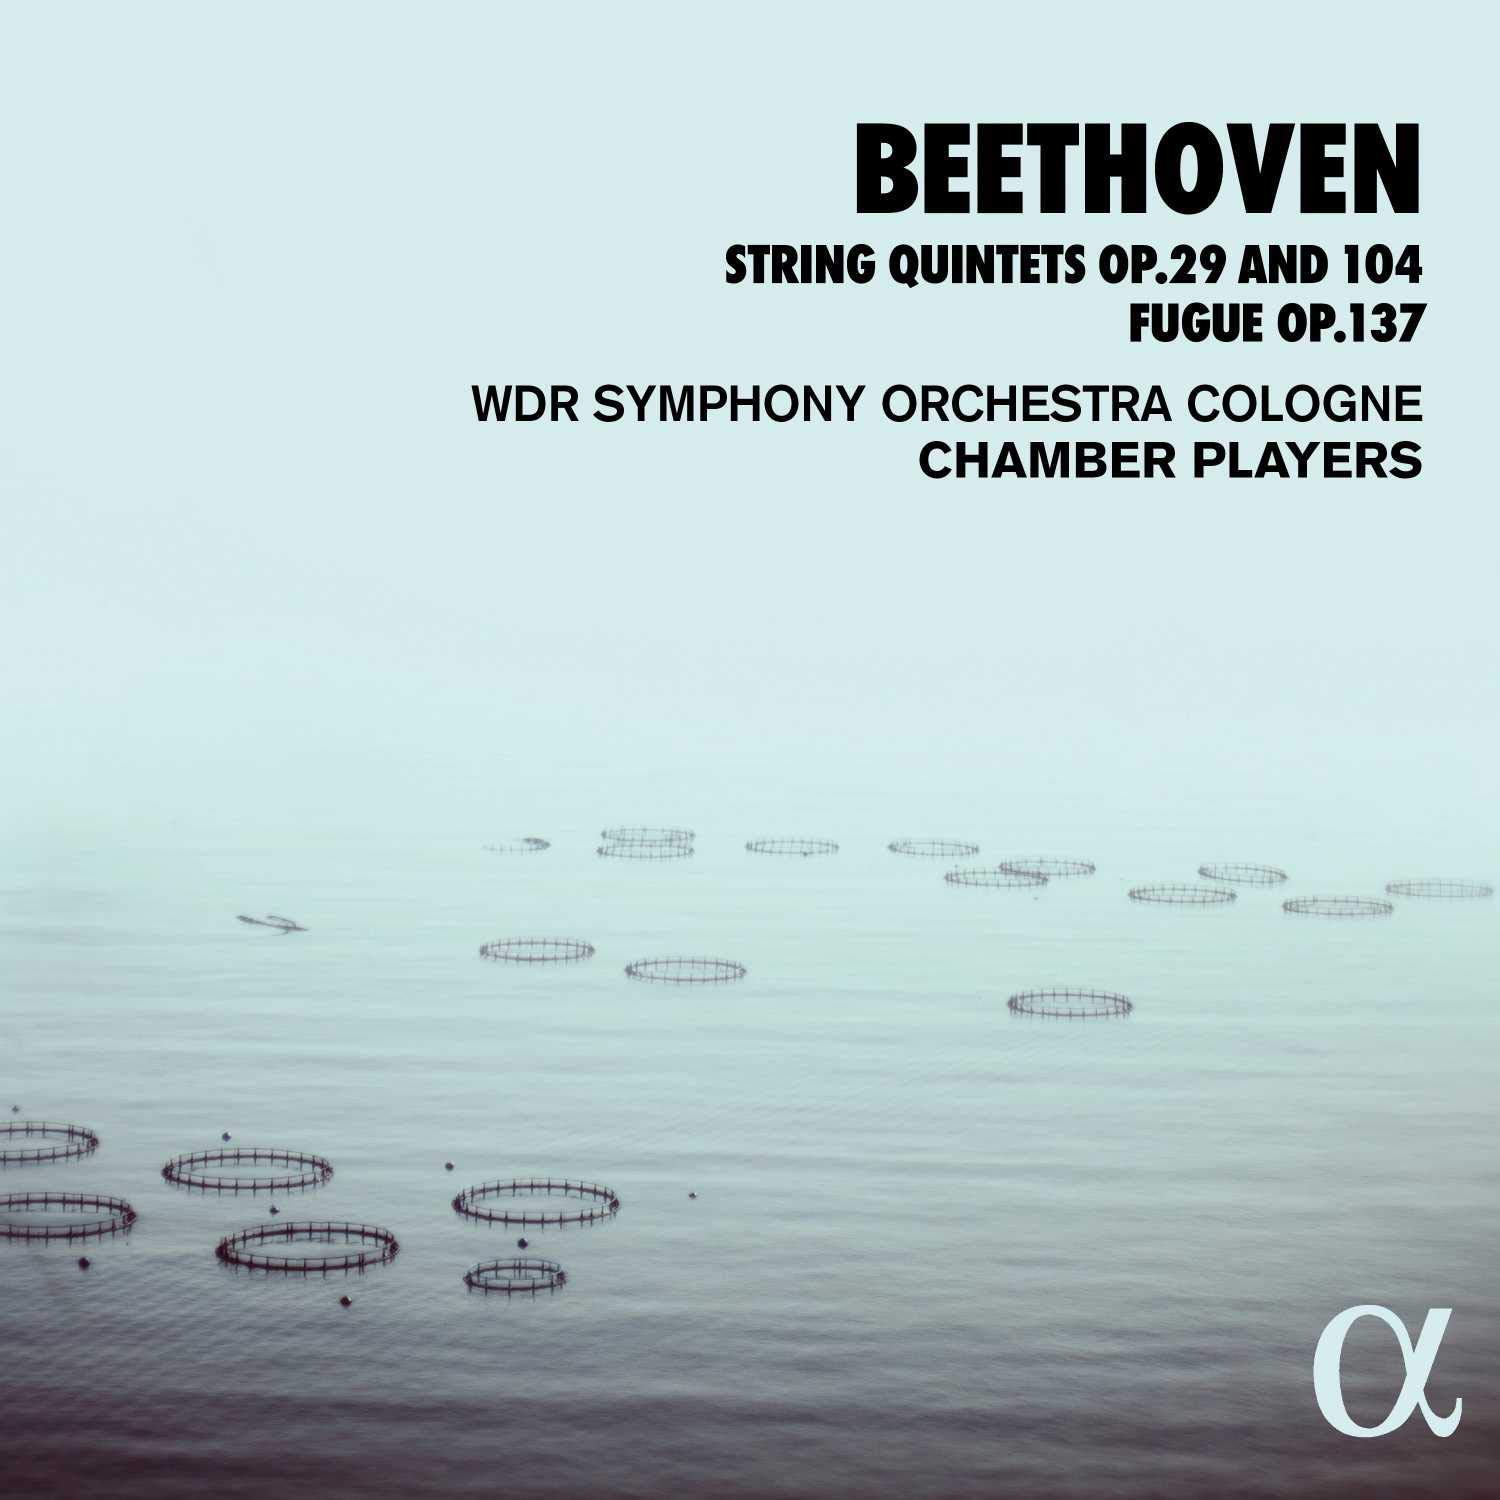 Review of BEETHOVEN String Quintets Opp 29 & 104. Fugue op 137